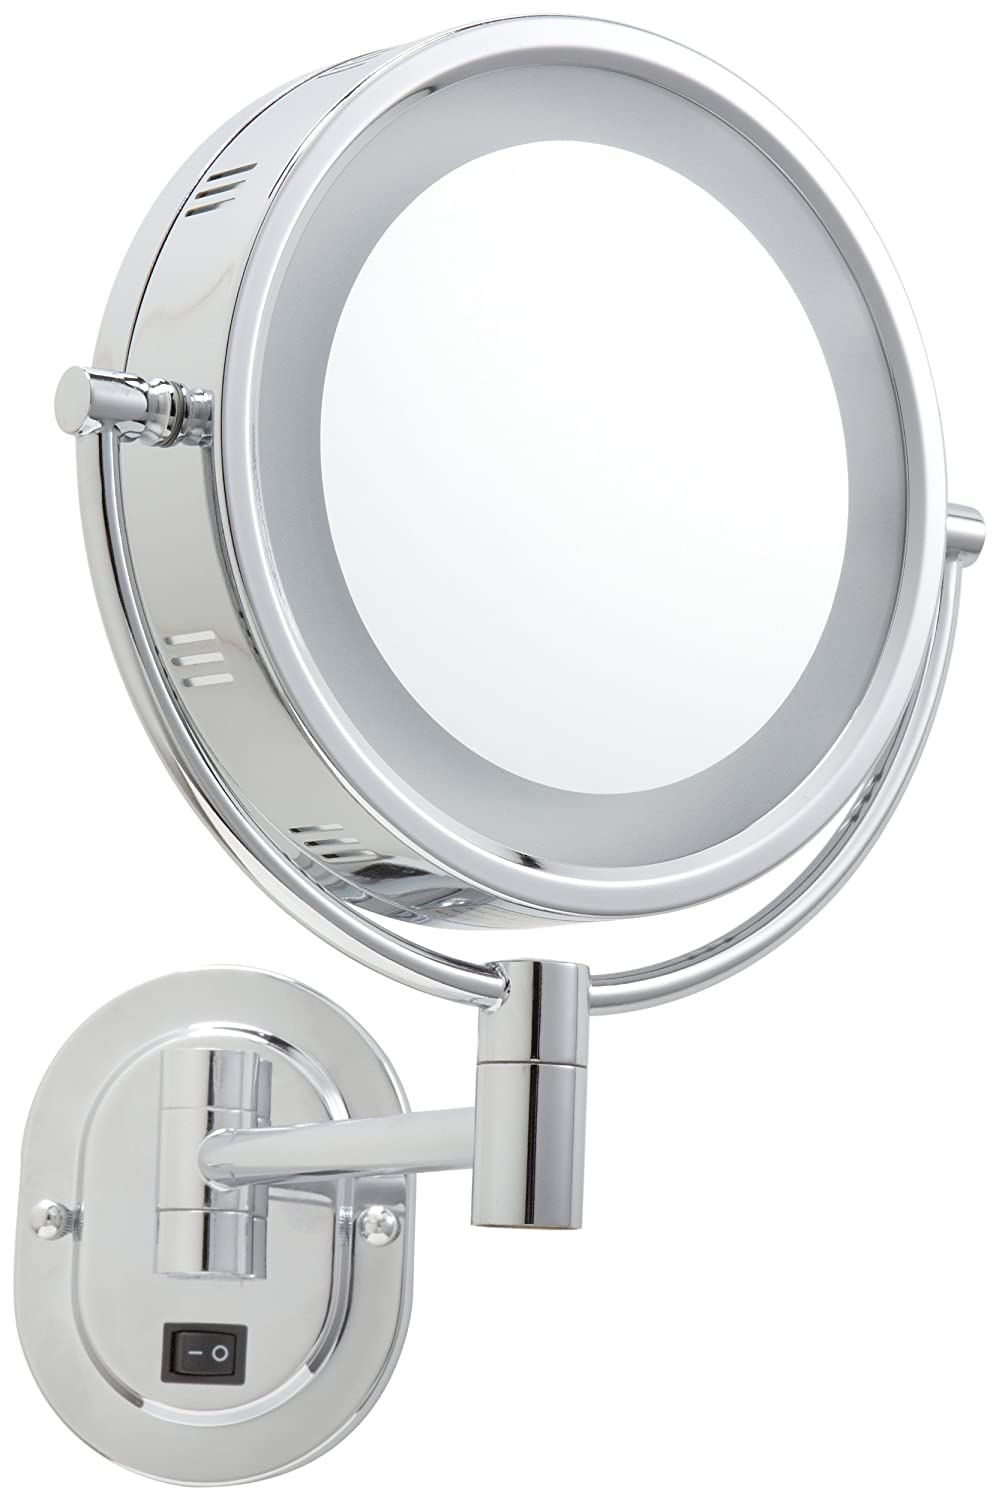 Amazon jerdon hl165cd 8 inch lighted wall mount direct wire amazon jerdon hl165cd 8 inch lighted wall mount direct wire makeup mirror with 5x magnification chrome finish beauty amipublicfo Gallery